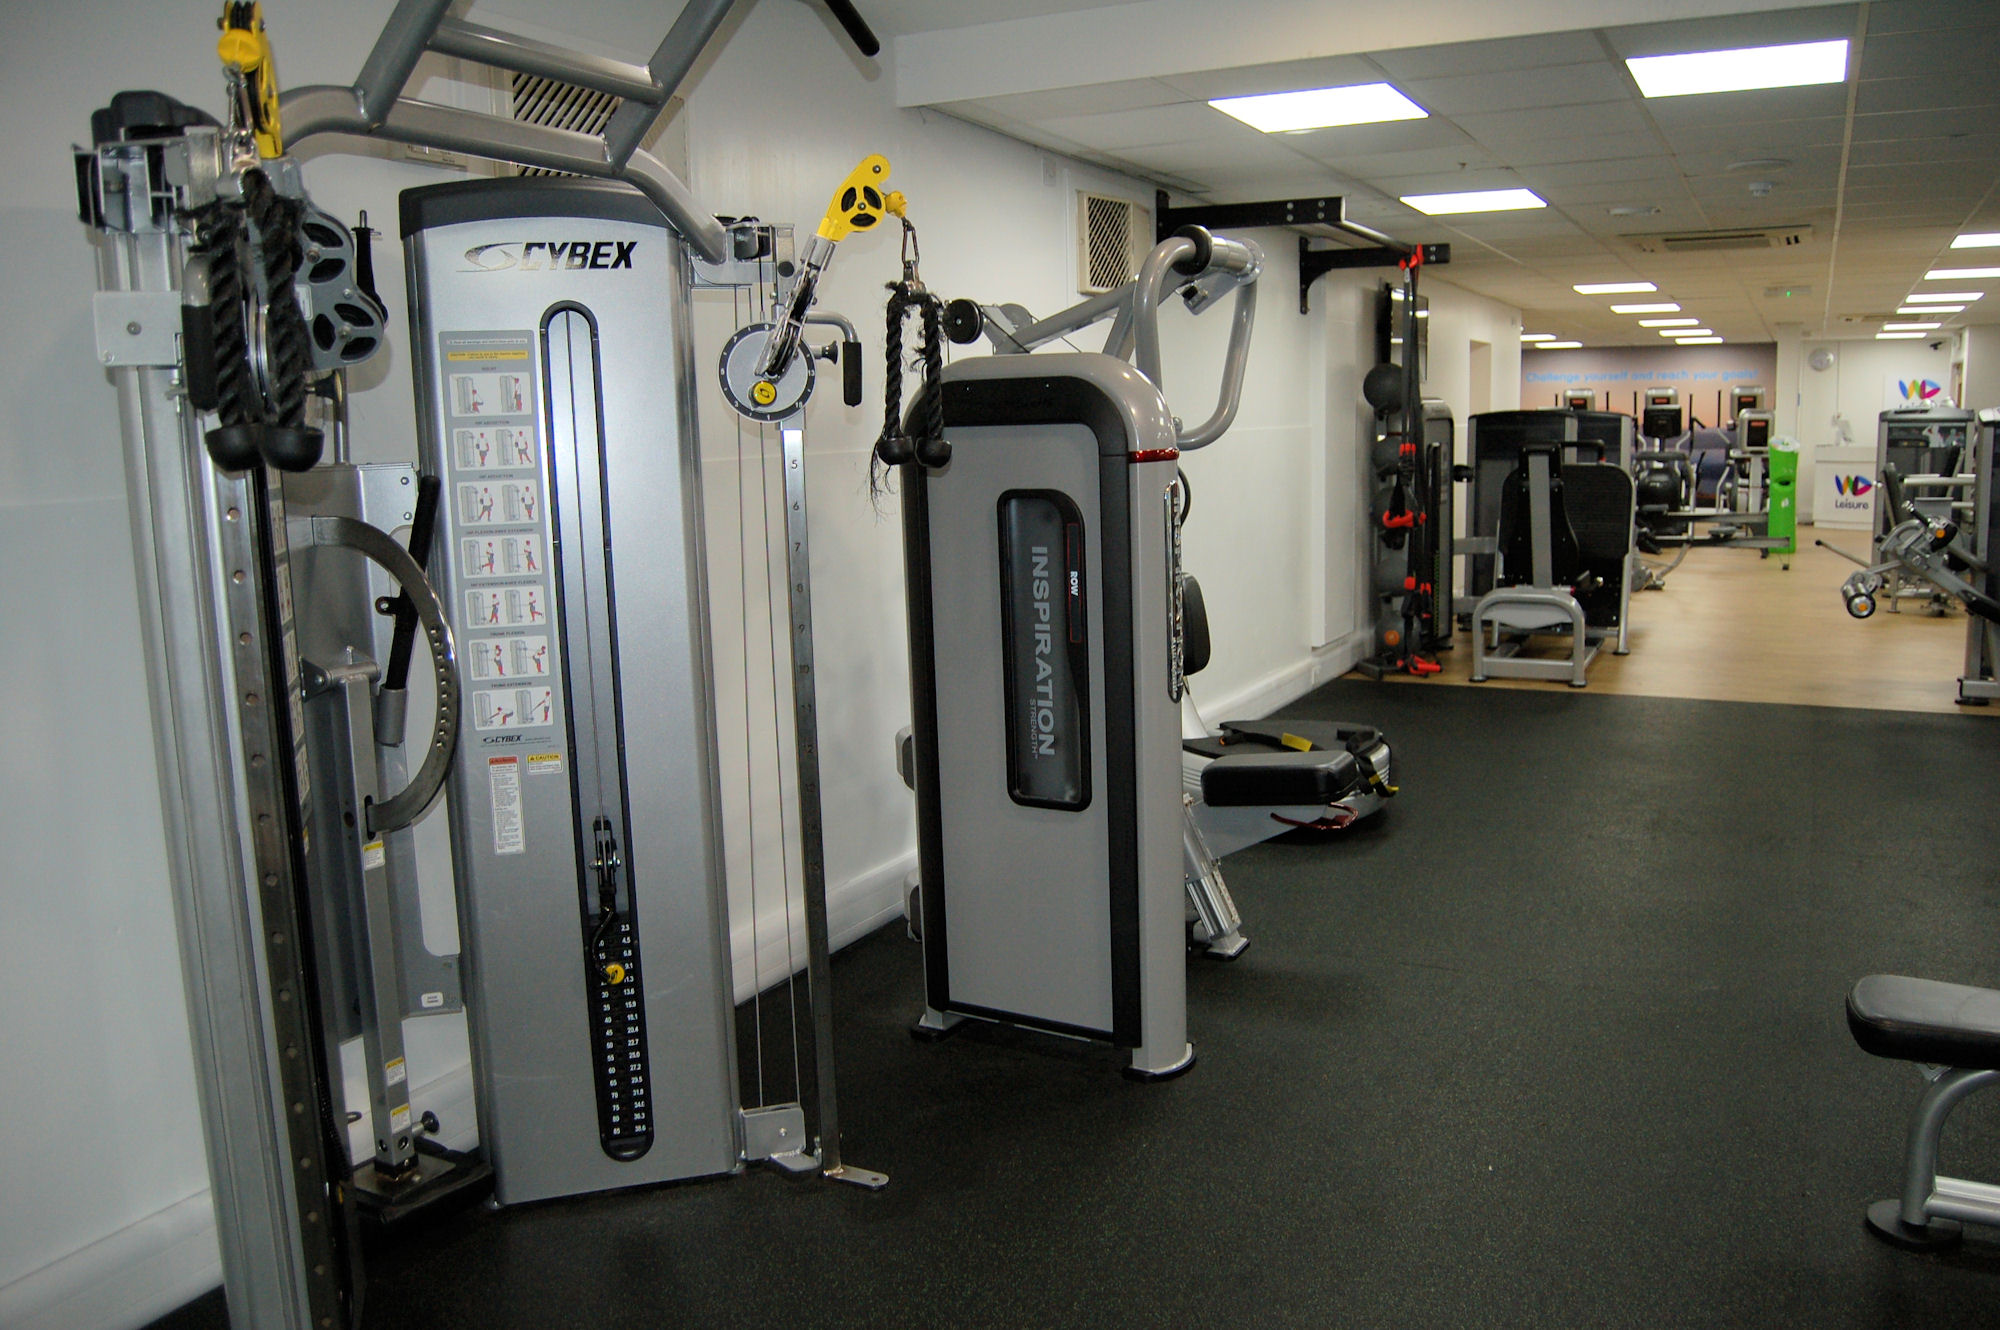 image of Gym equipment at Vale Pool